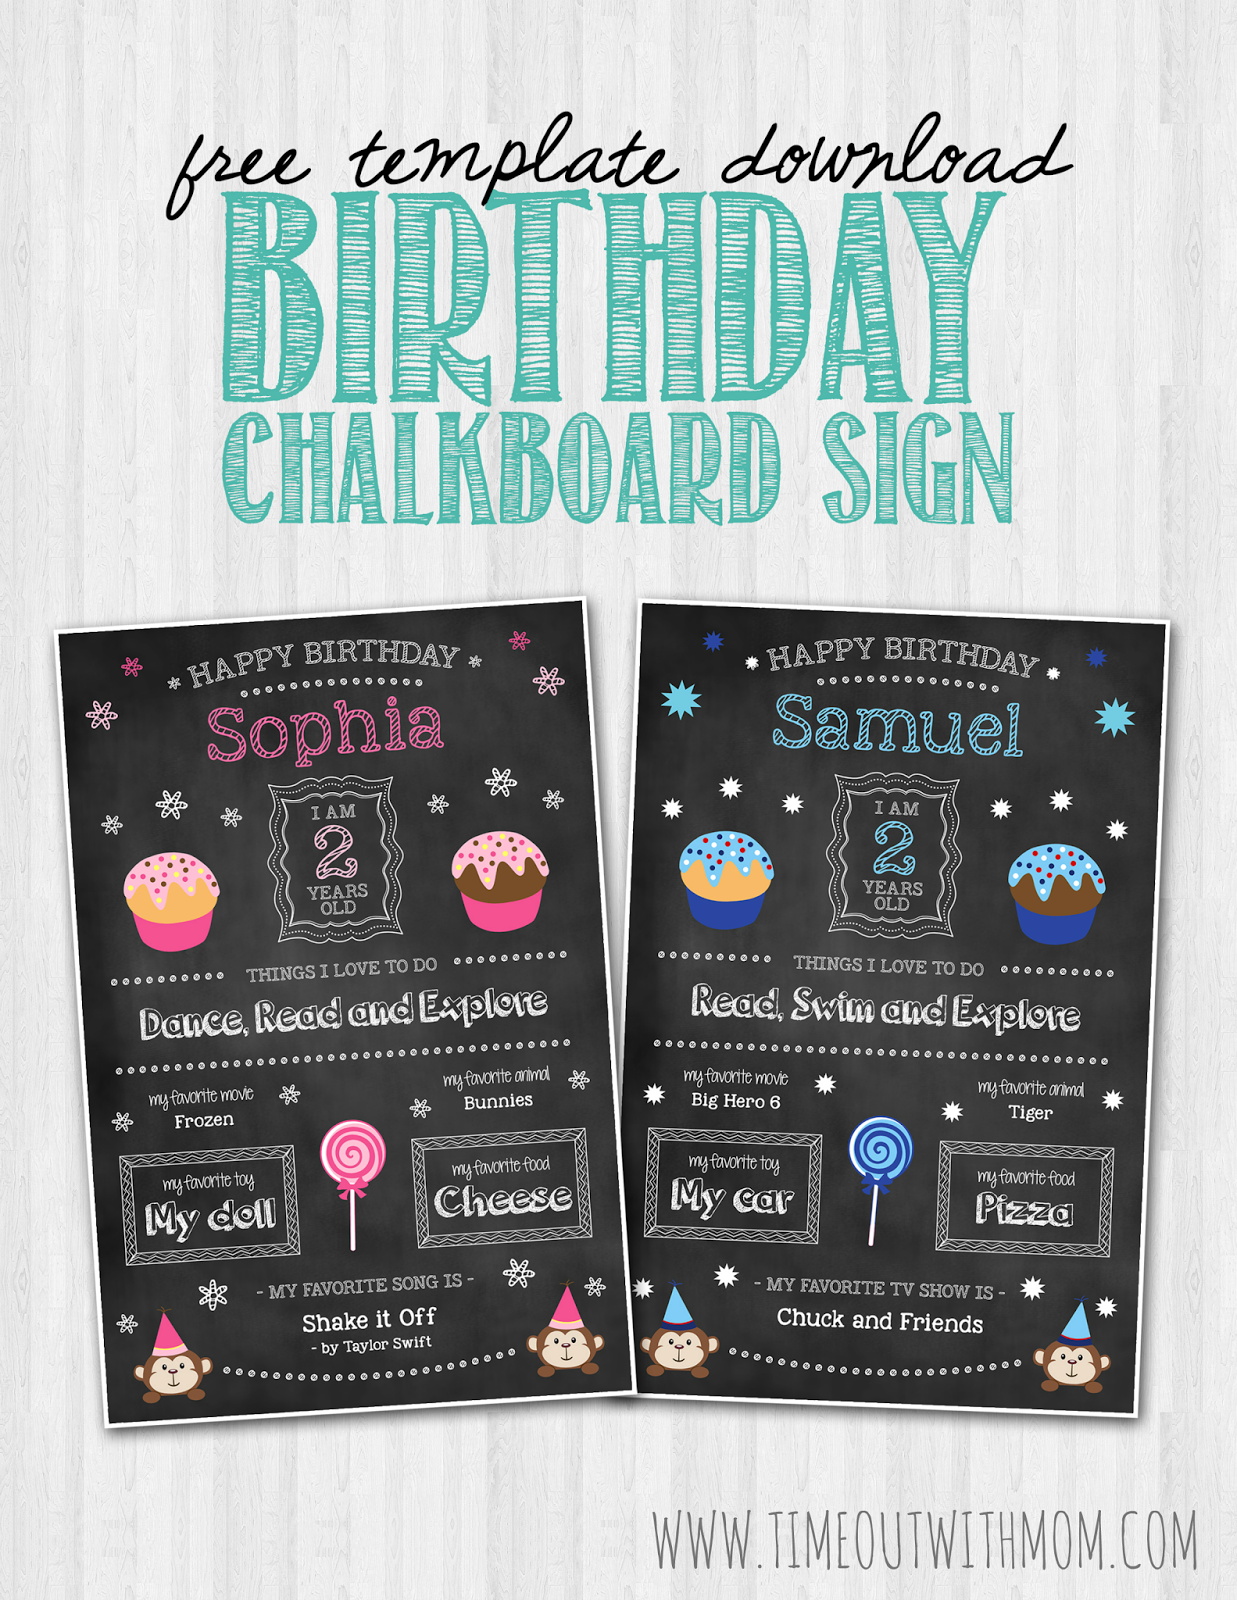 Birthday Chalkboard Sign Template And Tutorial - Chalkboard sign template